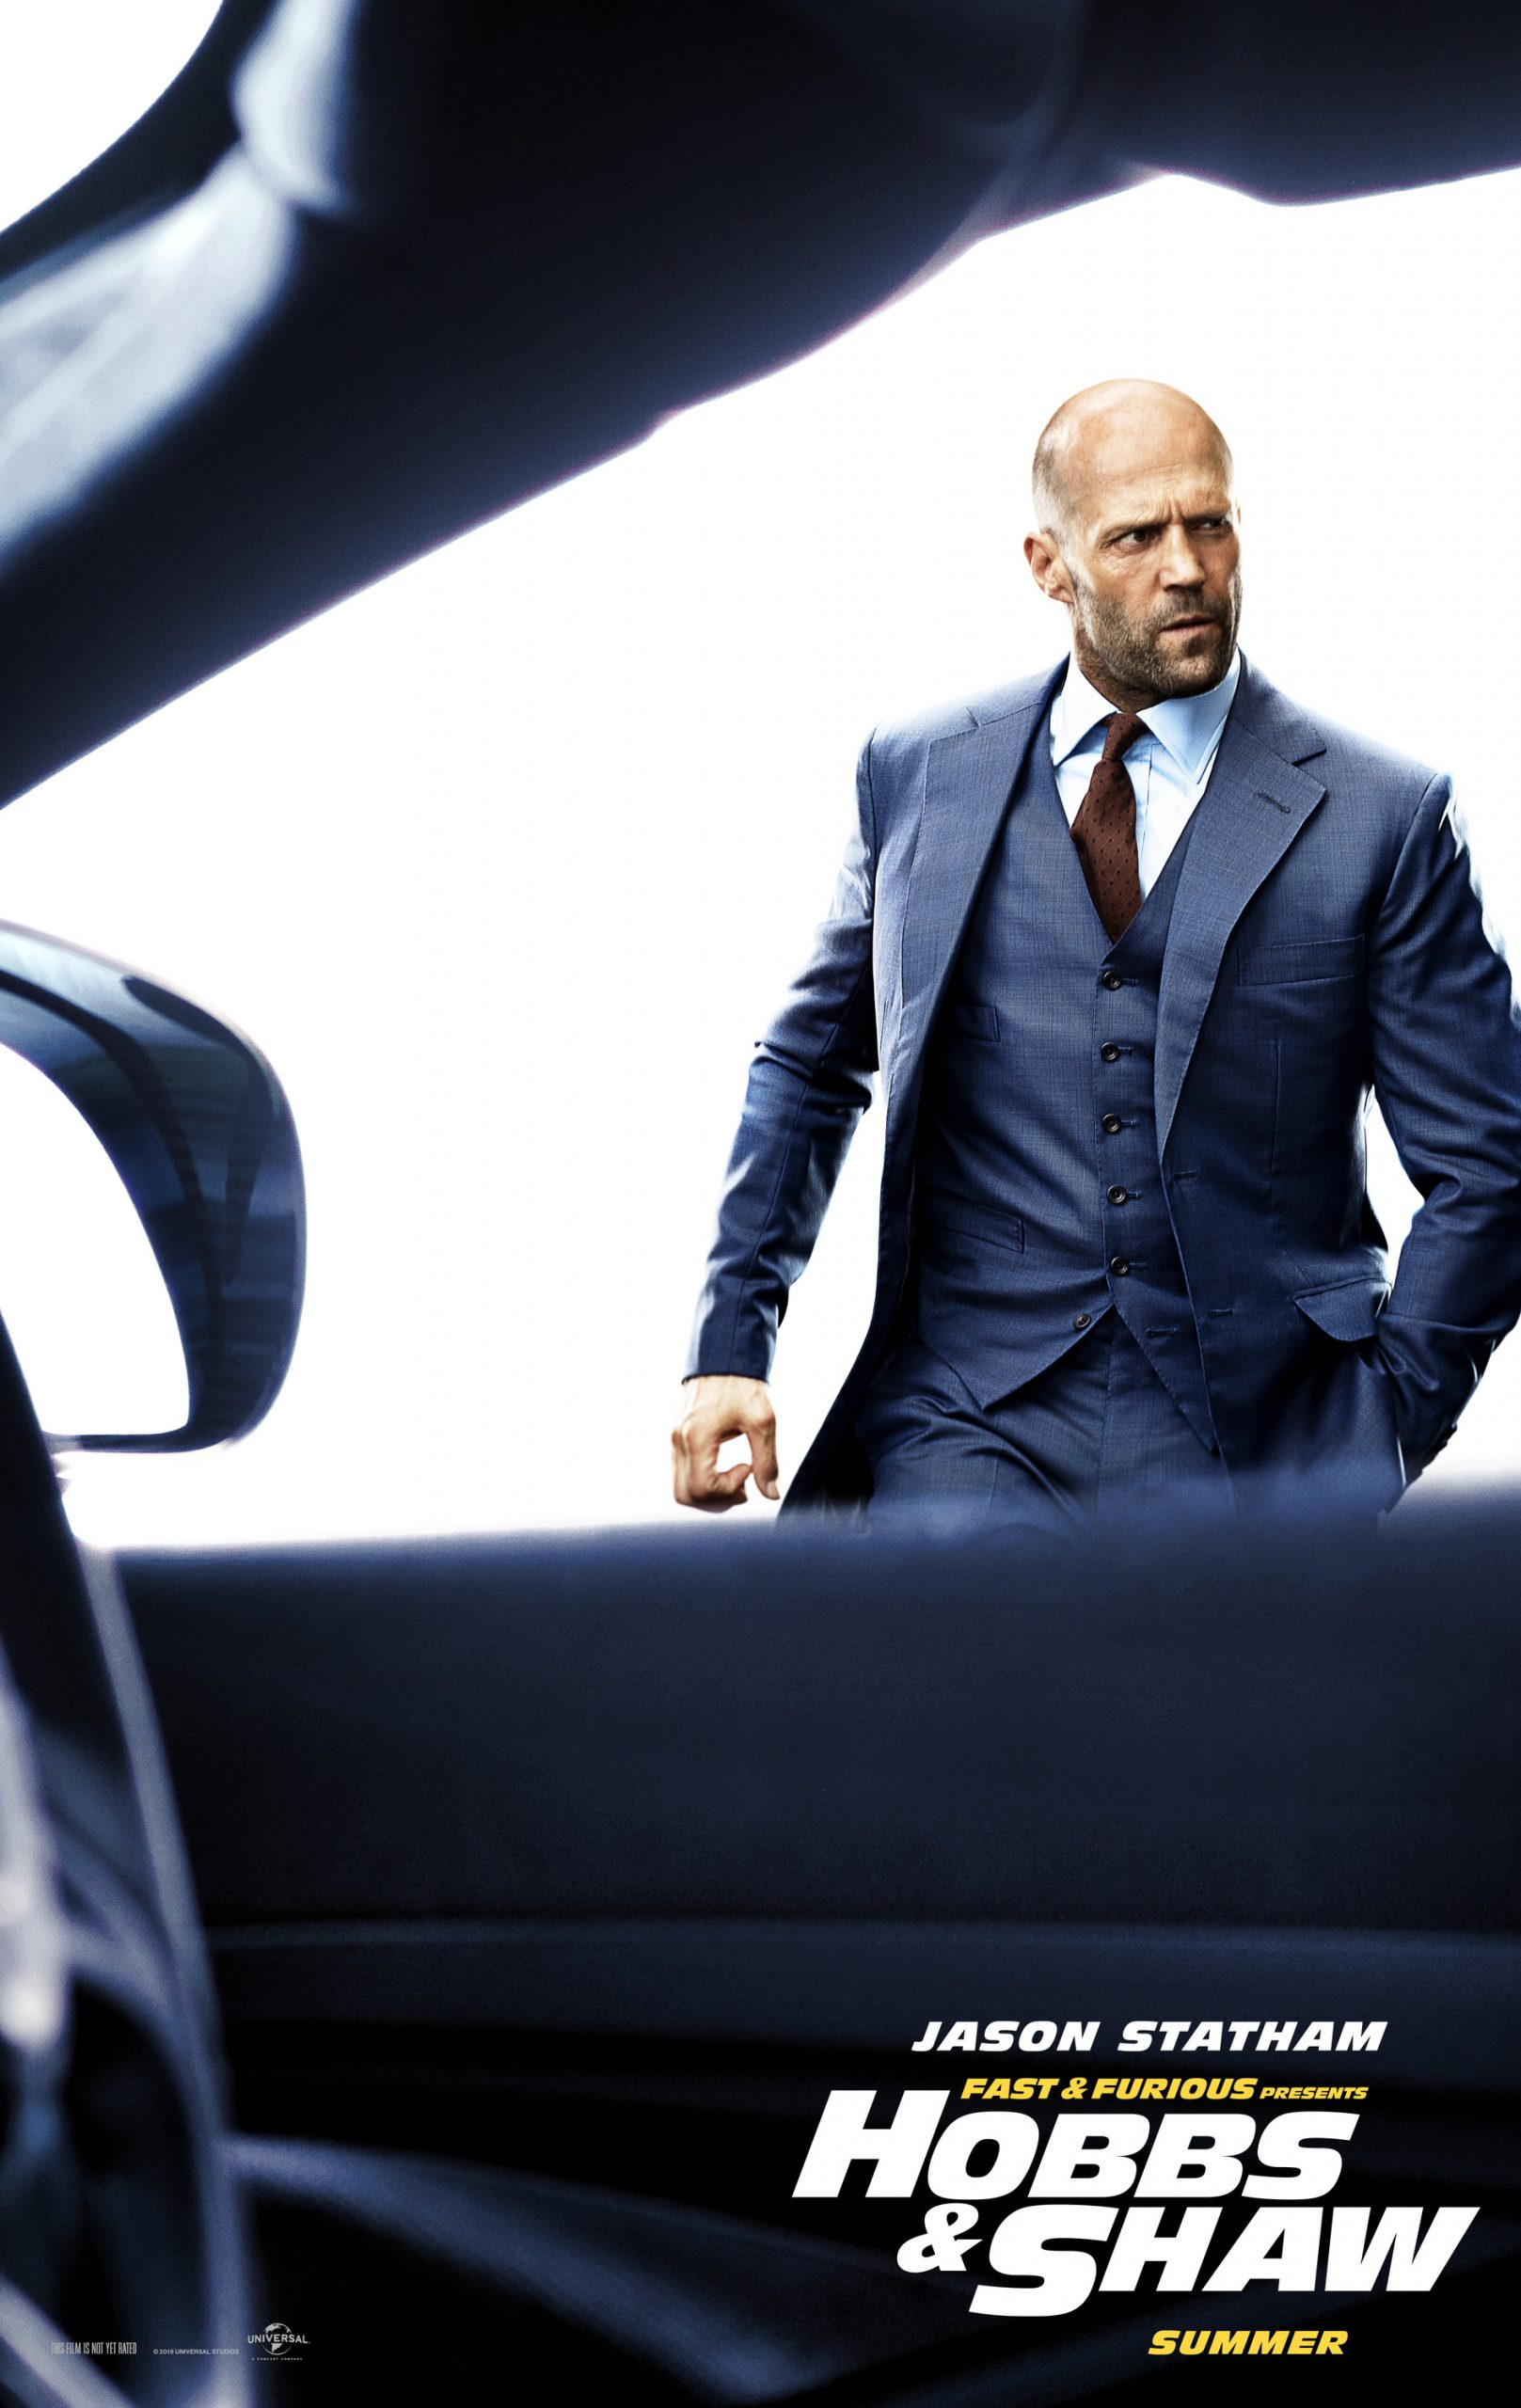 Fast and Furious presents Hobbs and Shaw Character Posters Jason Statham as Deckard Shaw